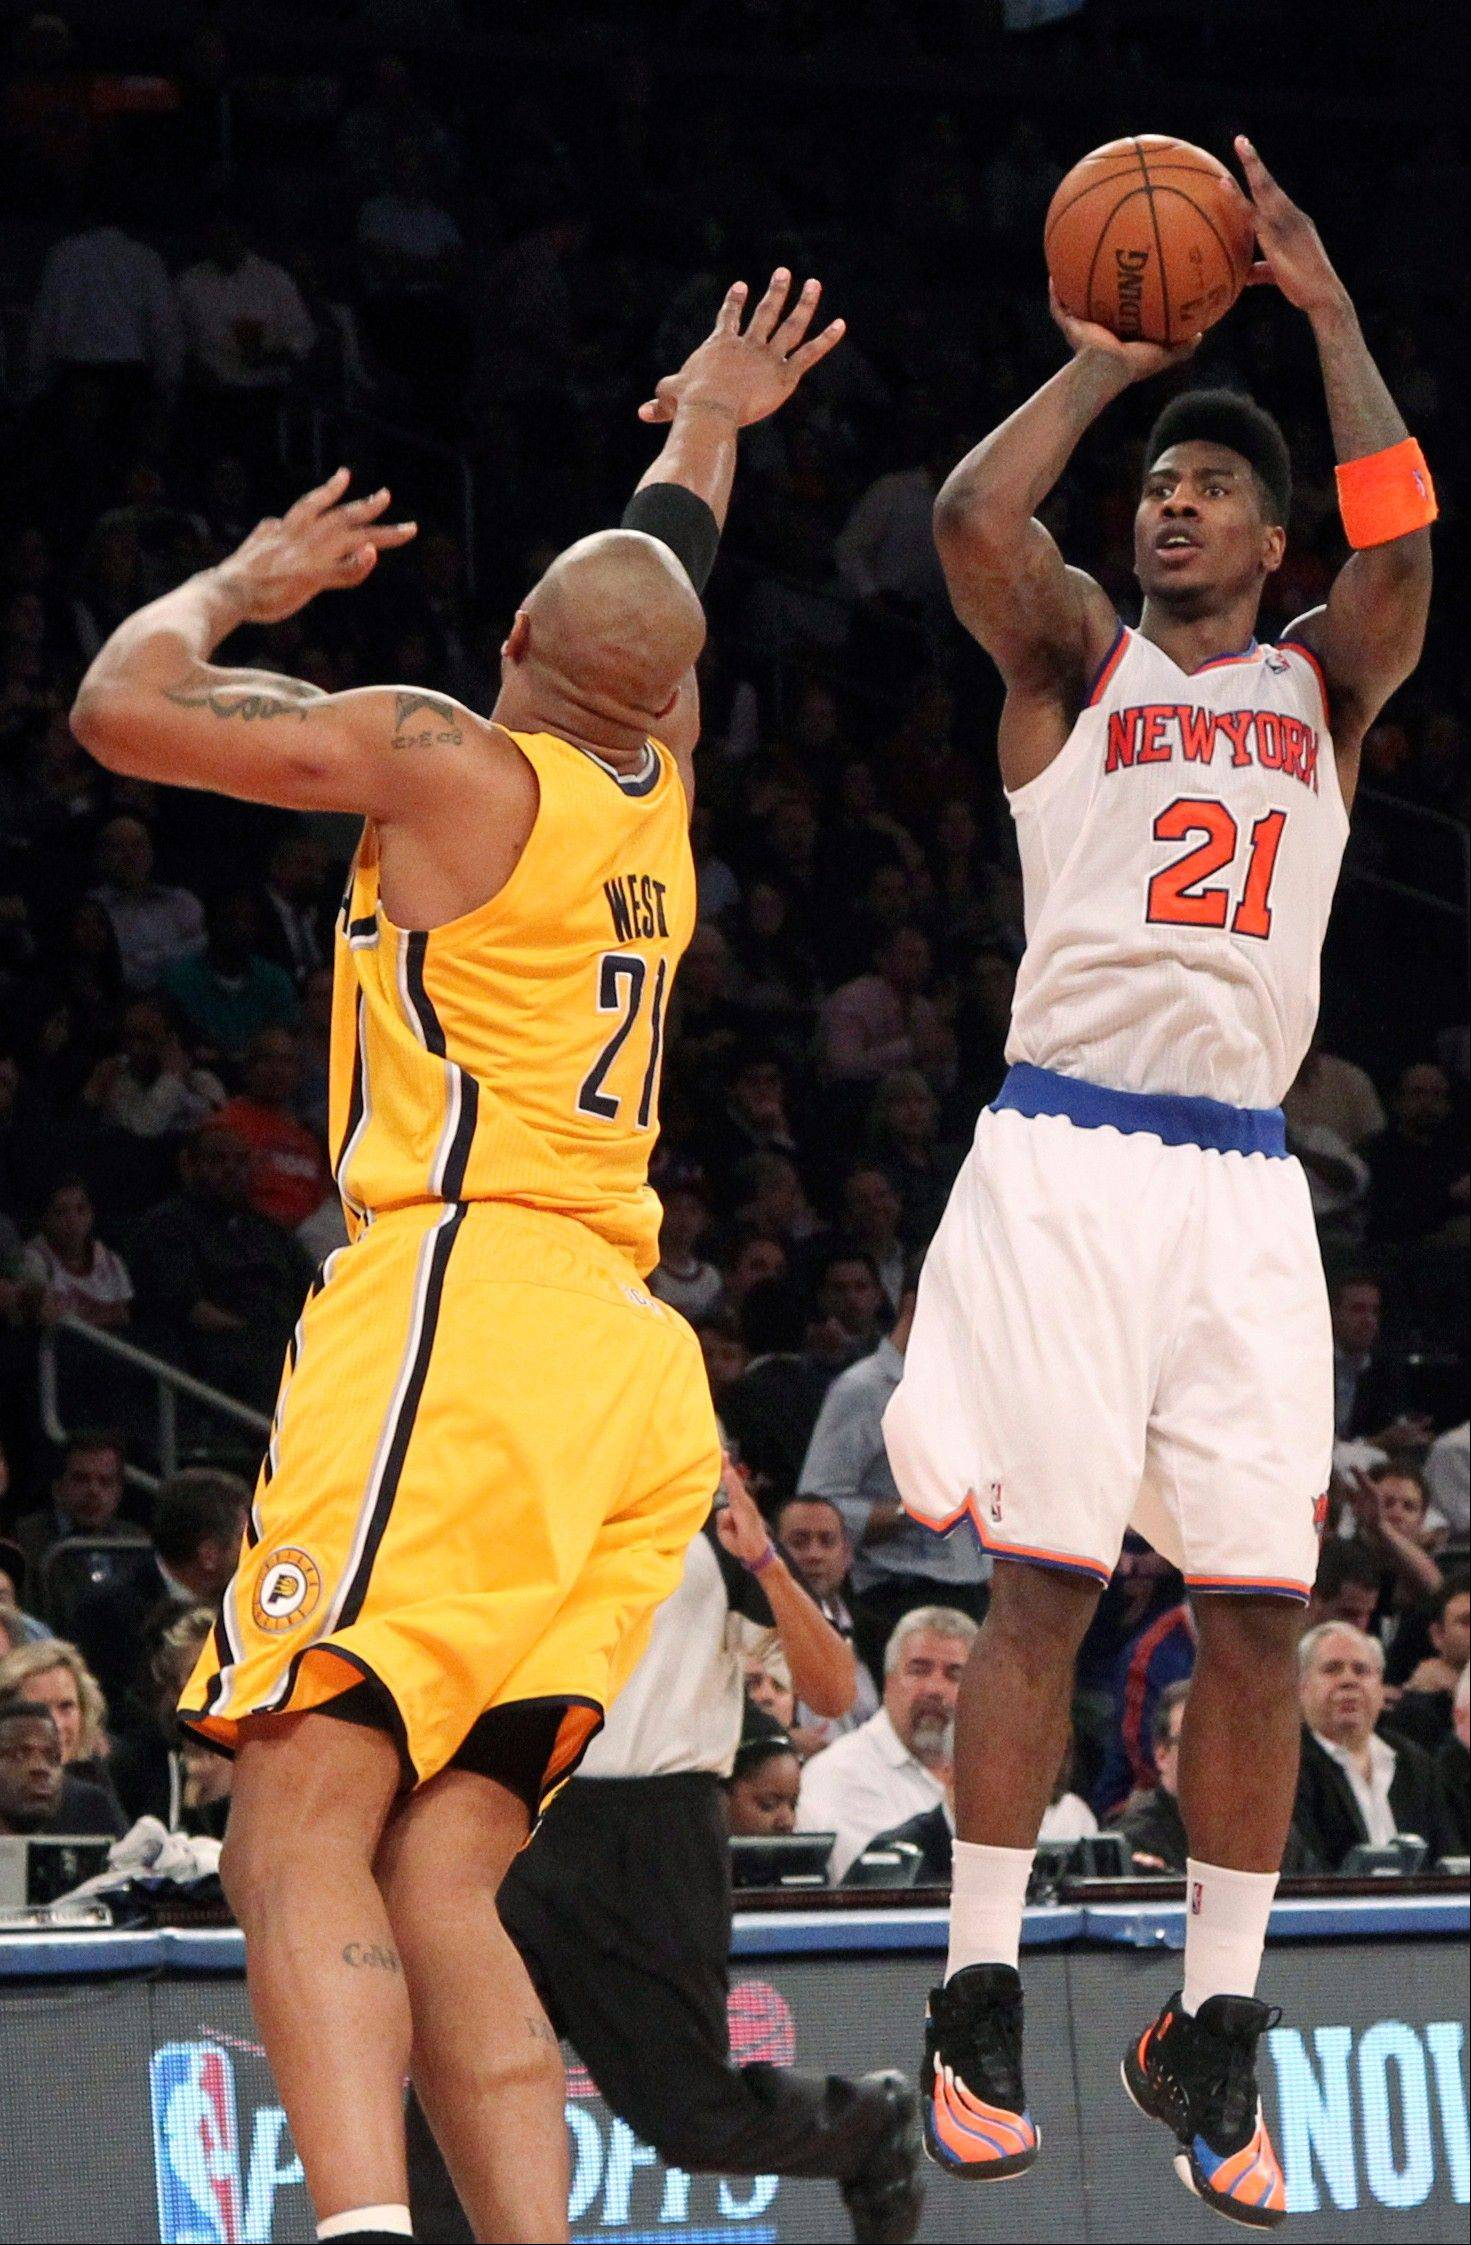 New York Knicks' Iman Shumpert (21) shoots a 3-pointer against Indiana Pacers' David West in the second half of Game 2 of their NBA basketball playoff series in the Eastern Conference semifinals at Madison Square Garden in New York, Tuesday, May 7, 2013. The Knicks won 105-79. (AP Photo/Mary Altaffer)